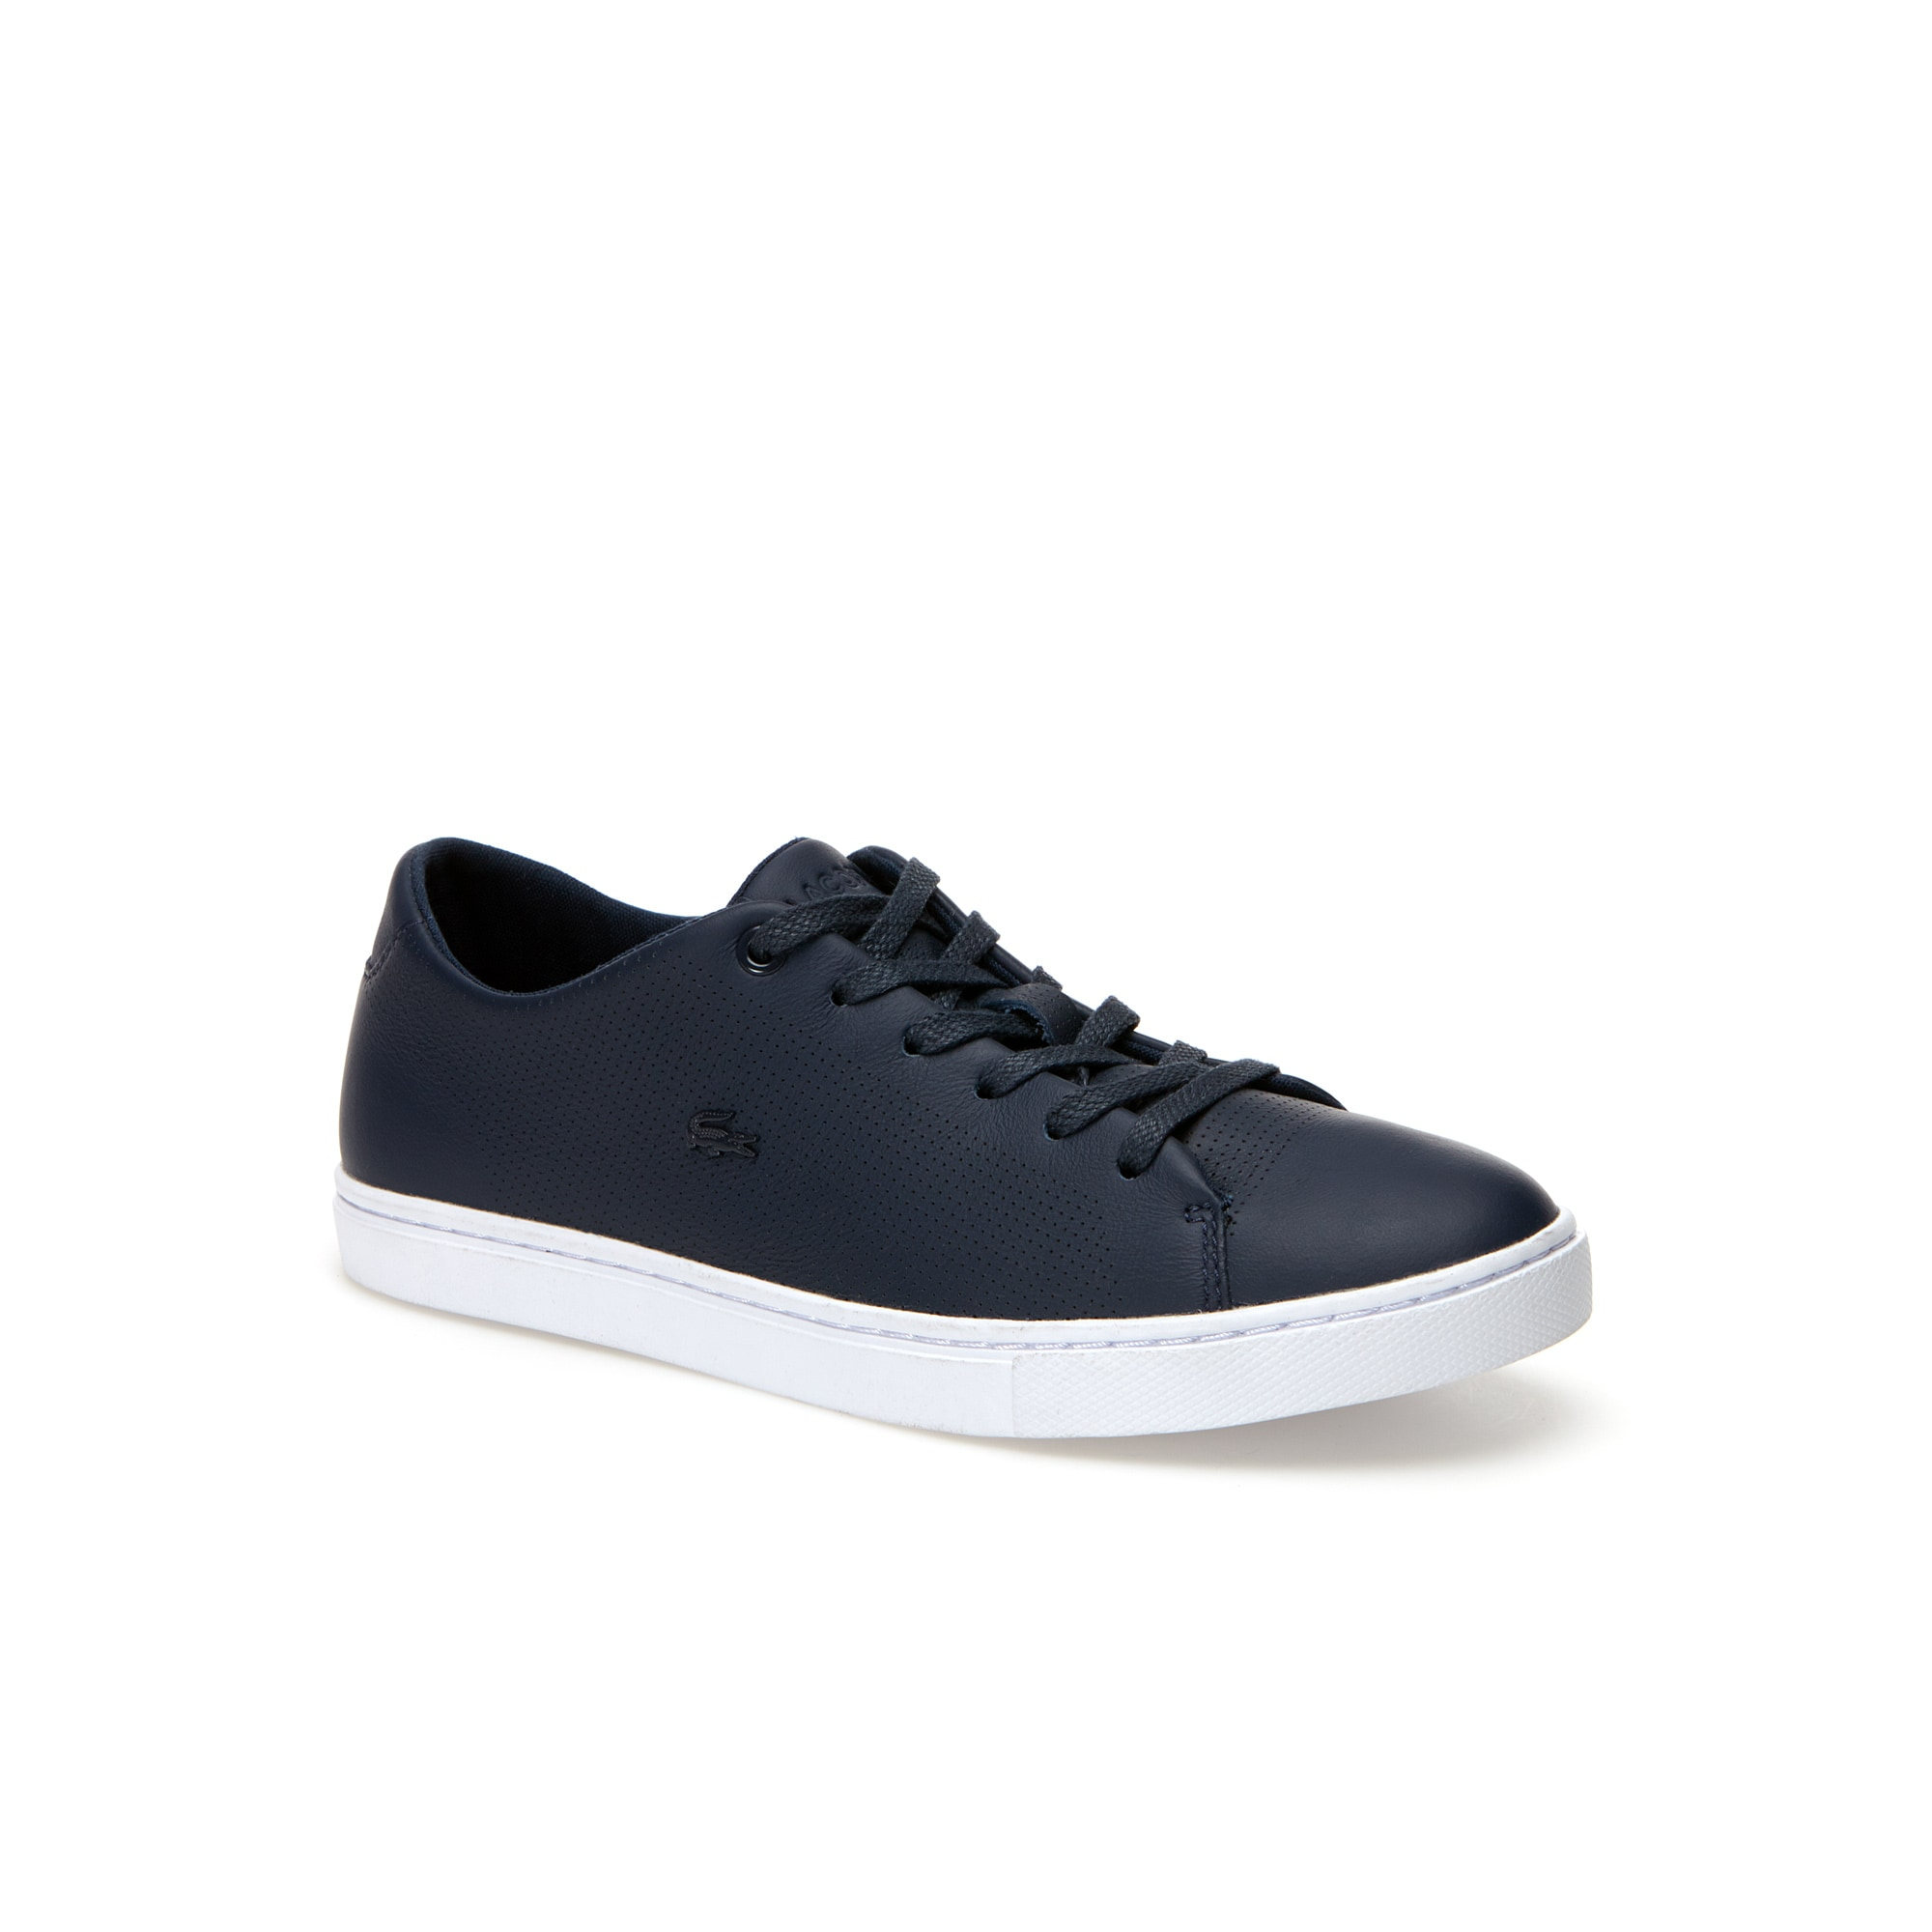 a743c843574b2 Women s Showcourt Leather Sneakers